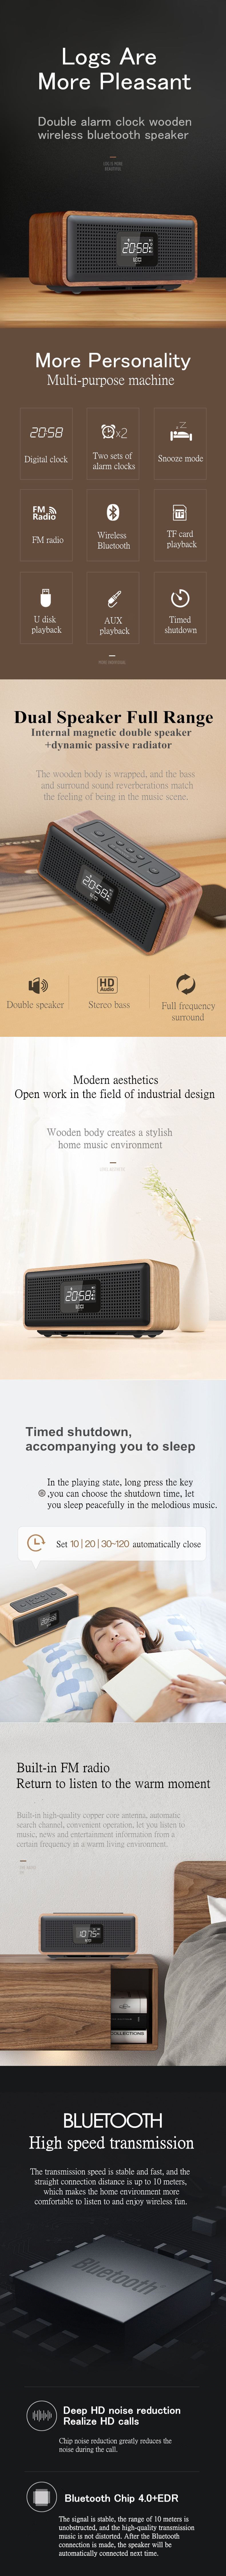 Double Alarm Clock Wooden Wireless bluetooth Speaker Subwoofer LCD Noise Reduction FM Radio With Mic